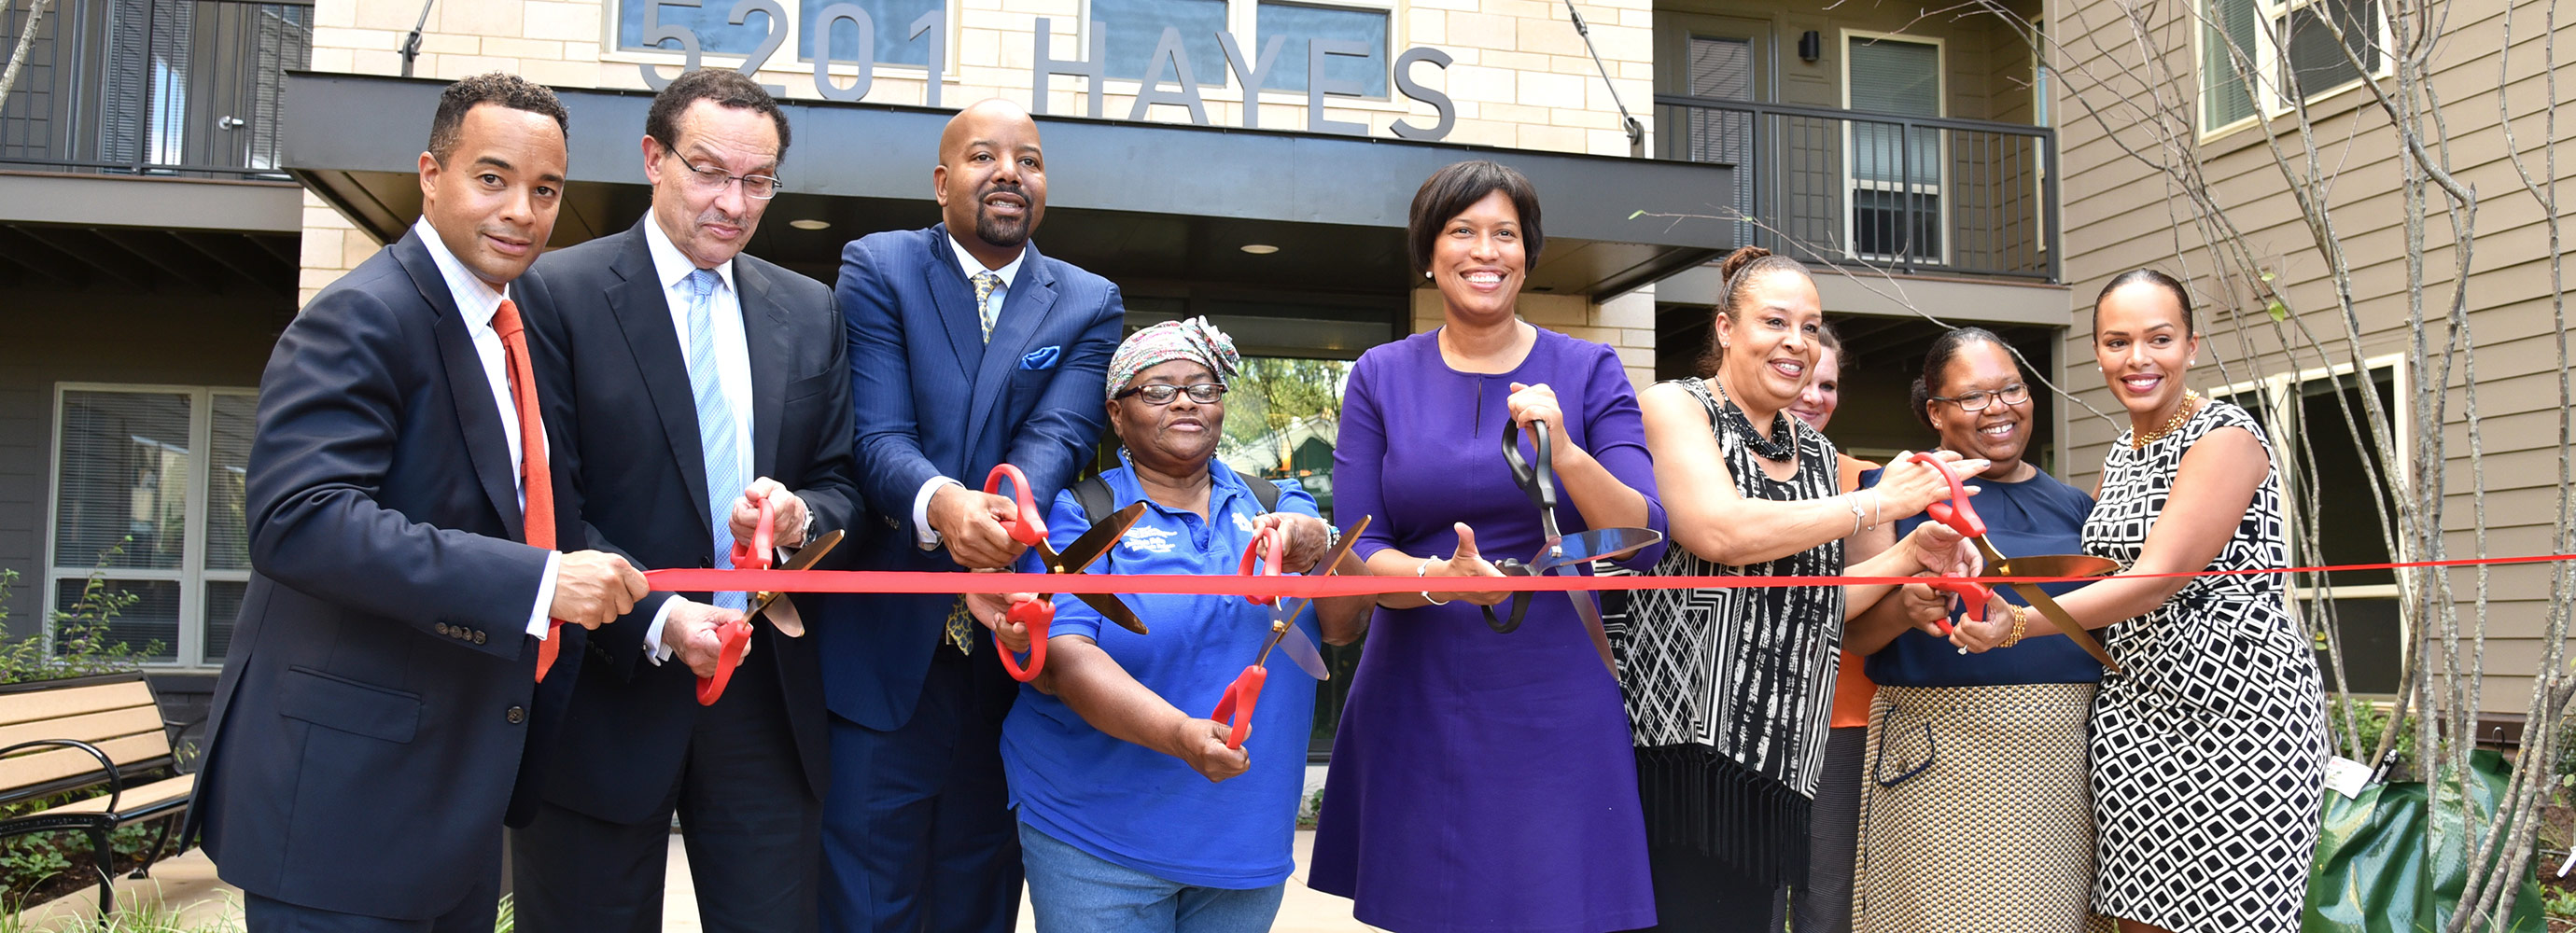 Ribbon cutting in front of 5201 HAYES